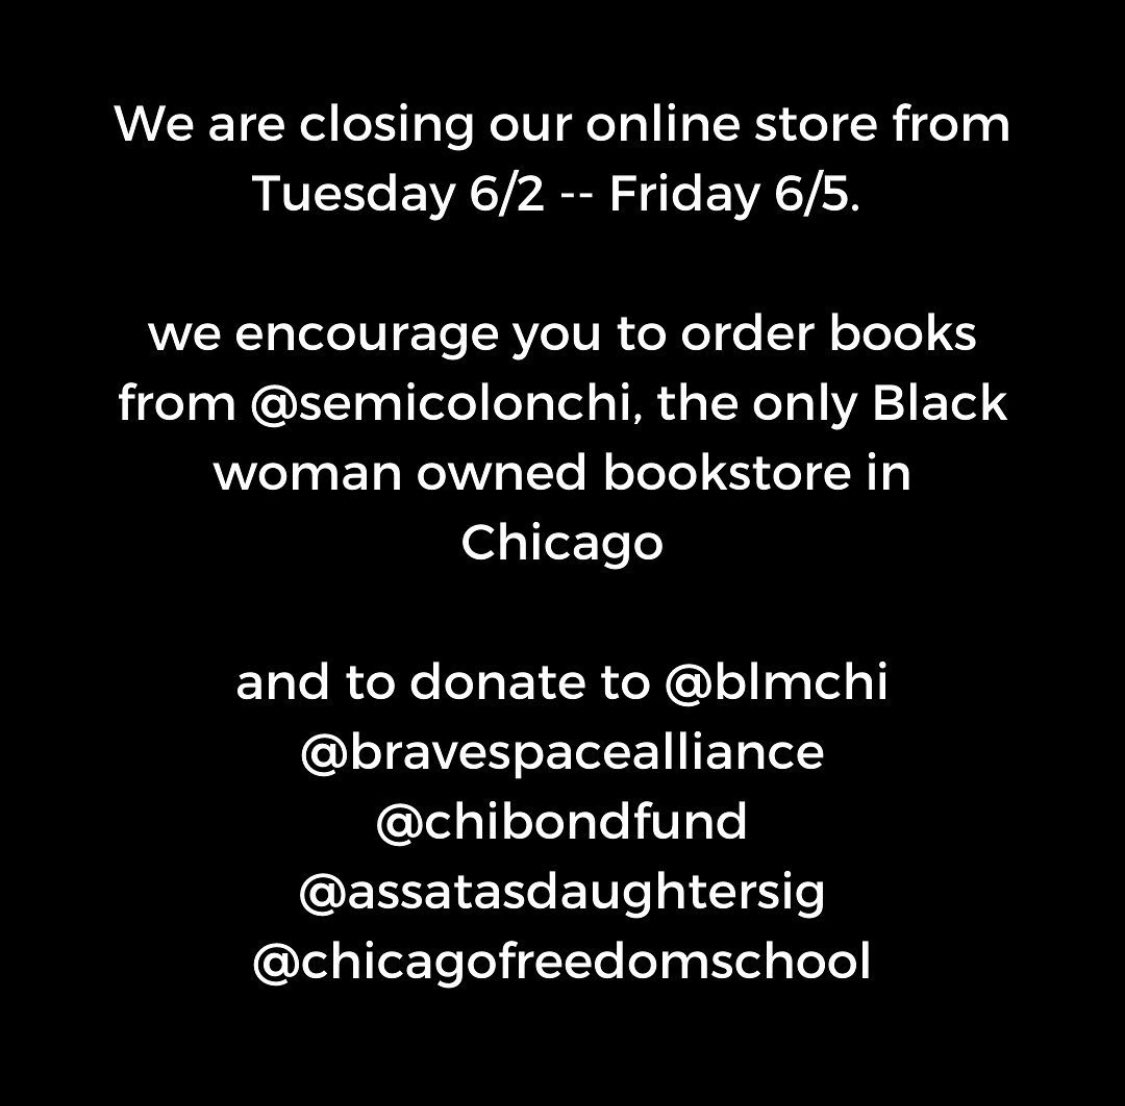 From @wcfbook. But don't let this be the only time you buy from @SemicolonChi. Many shop @wcfbook bc they want to support and elevate the voices of women. Investing in Black women specifically *is* imperative. So, spread your accumulated intergenerational wealth here, too.